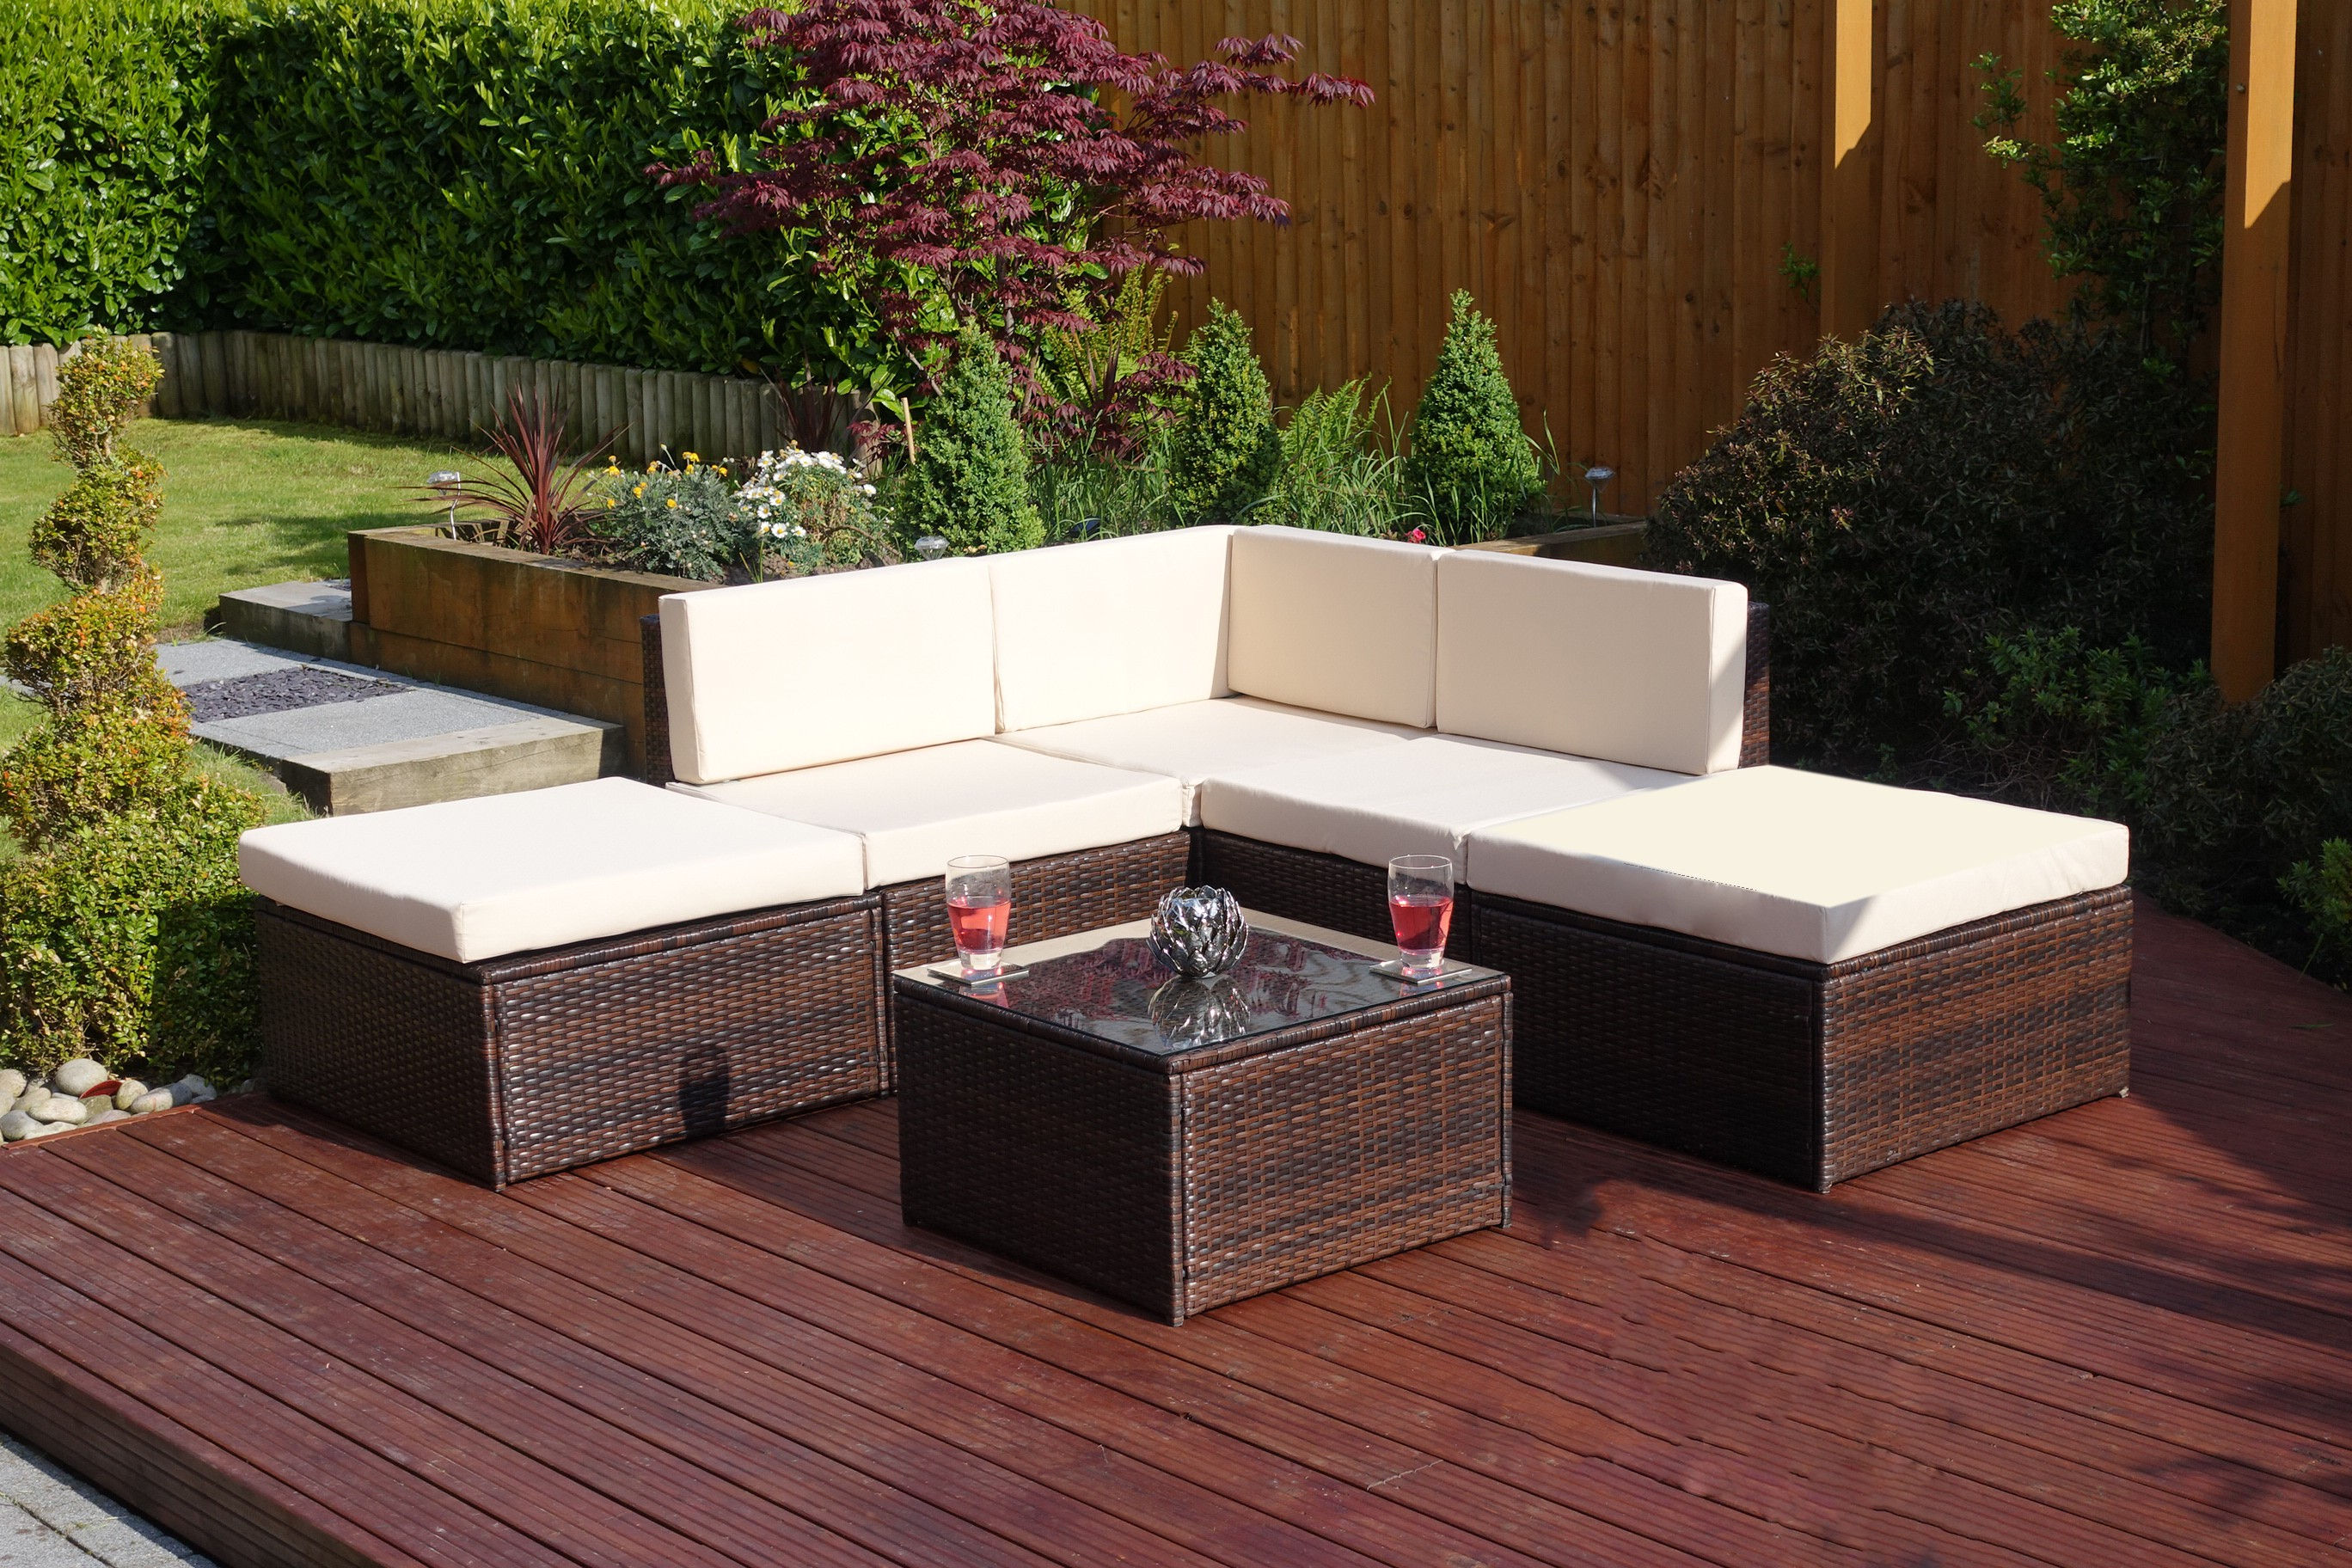 Chic New 6 Piece Lake Como Modular Rattan Corner Sofa Set in Brown rattan corner sofa set